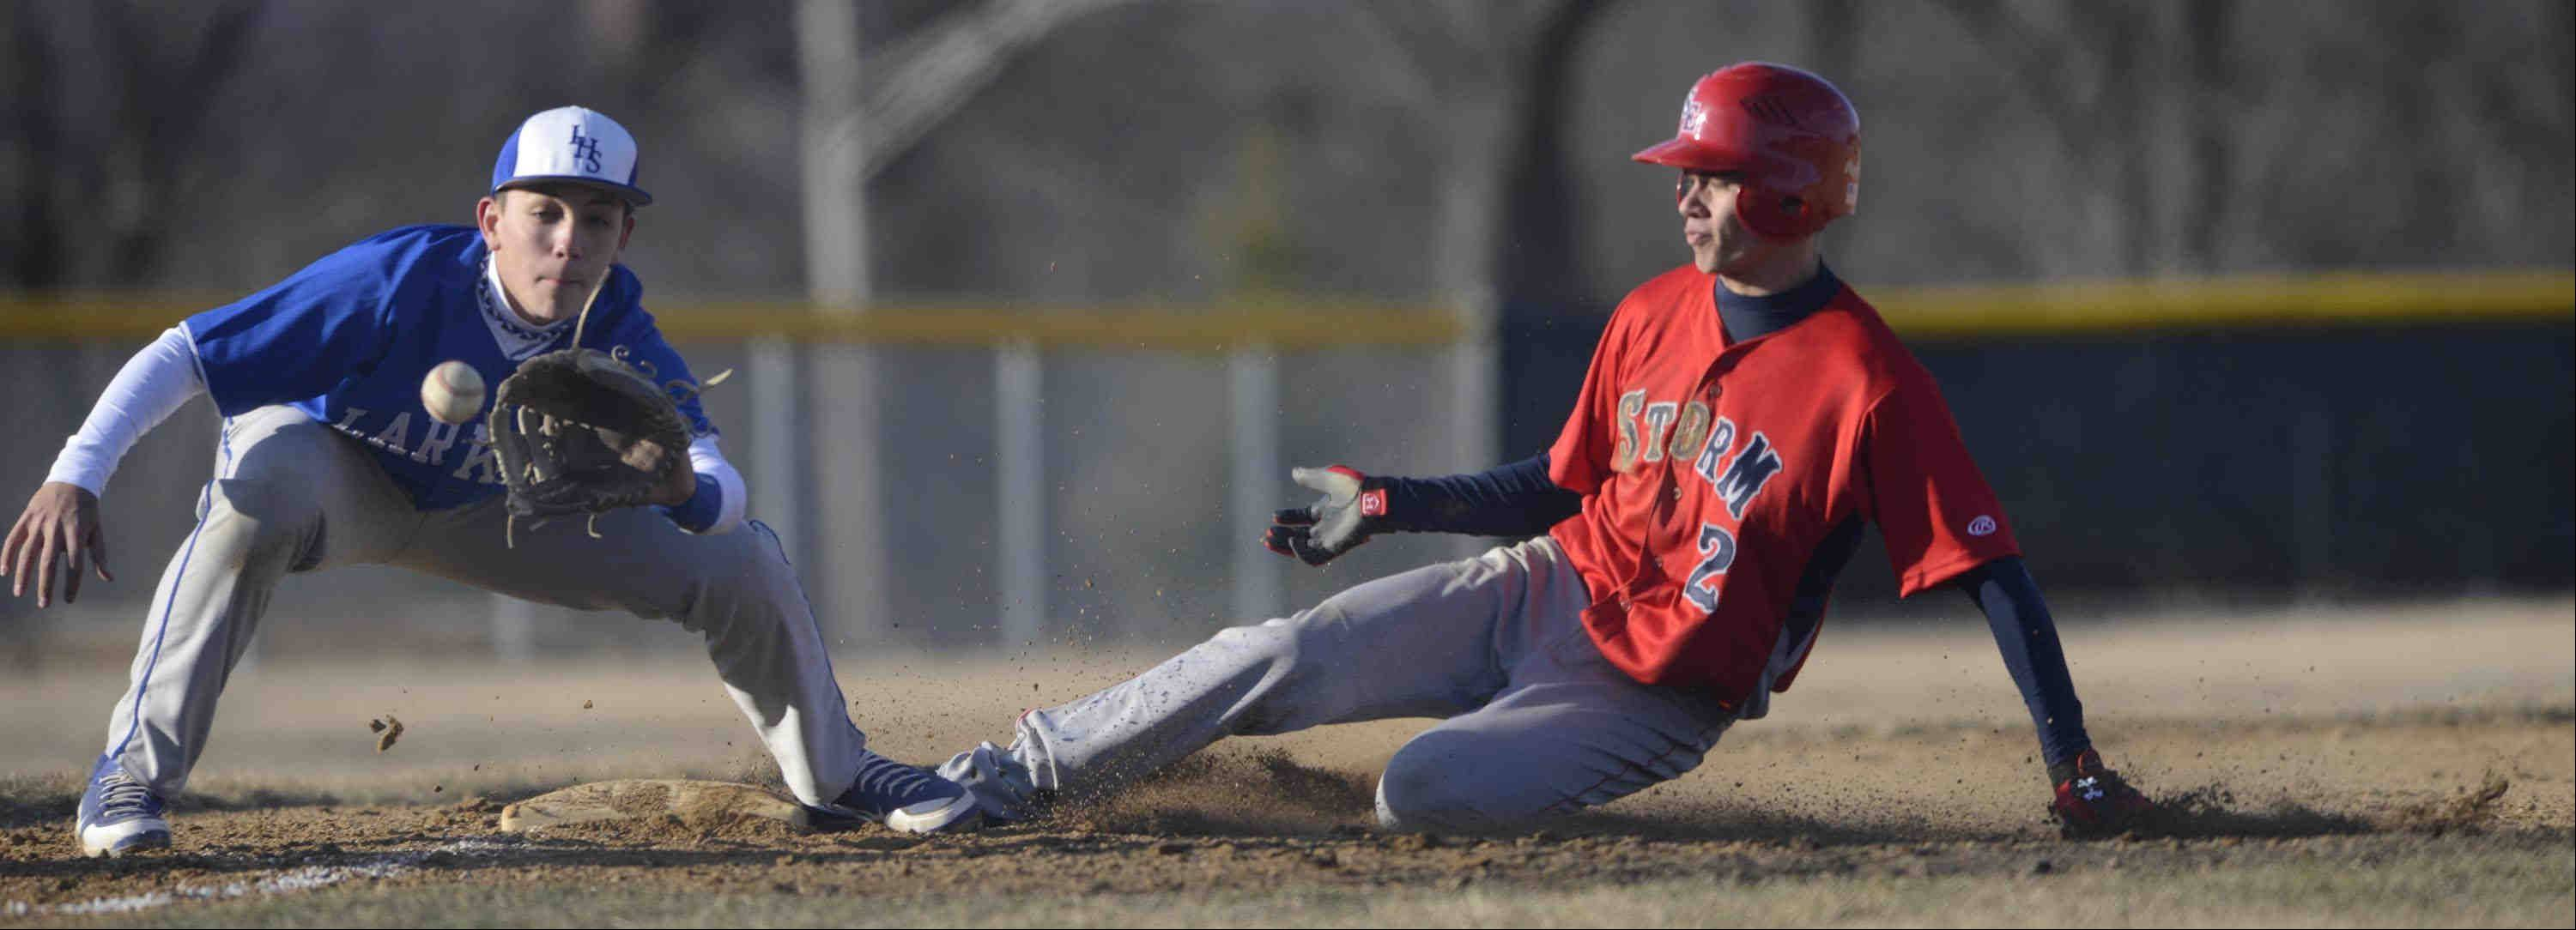 South Elgin's Tyler Christensen slides safely into the bag as Larkin third baseman Dan Lenz waits for the throw Tuesday in South Elgin.